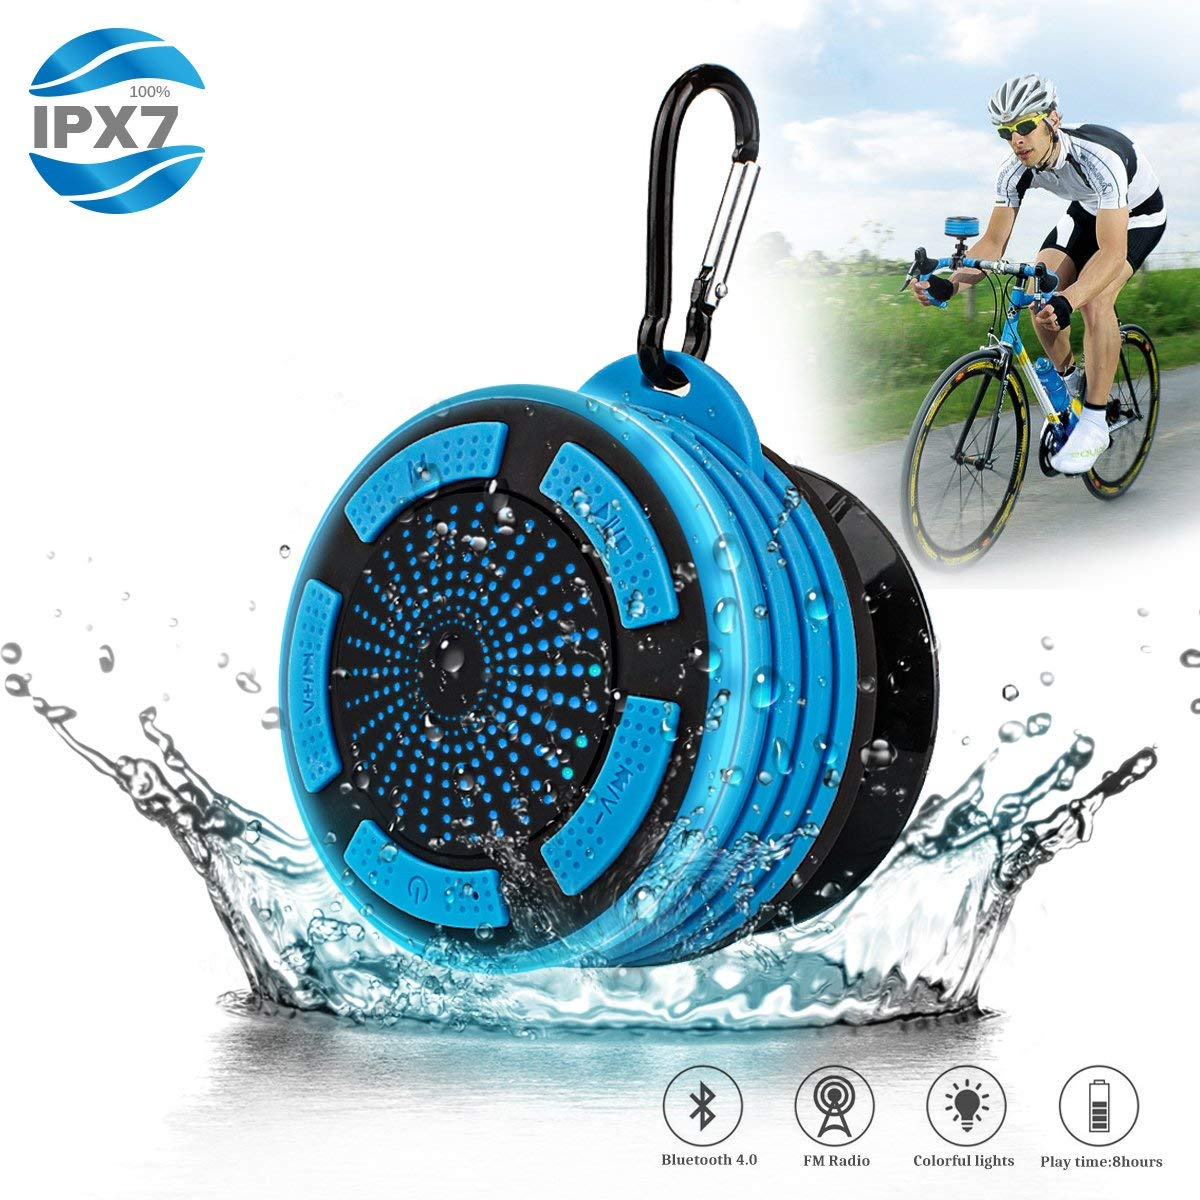 Bluetooth Shower Speaker Waterpoof Shower Radios, Wireless Bathroom Speaker with FM Radios, LED Mood Light, Suction Cup, Portable Speaker for Shower Kids Home Outdoor Beach Pool Hot Tub DGnight